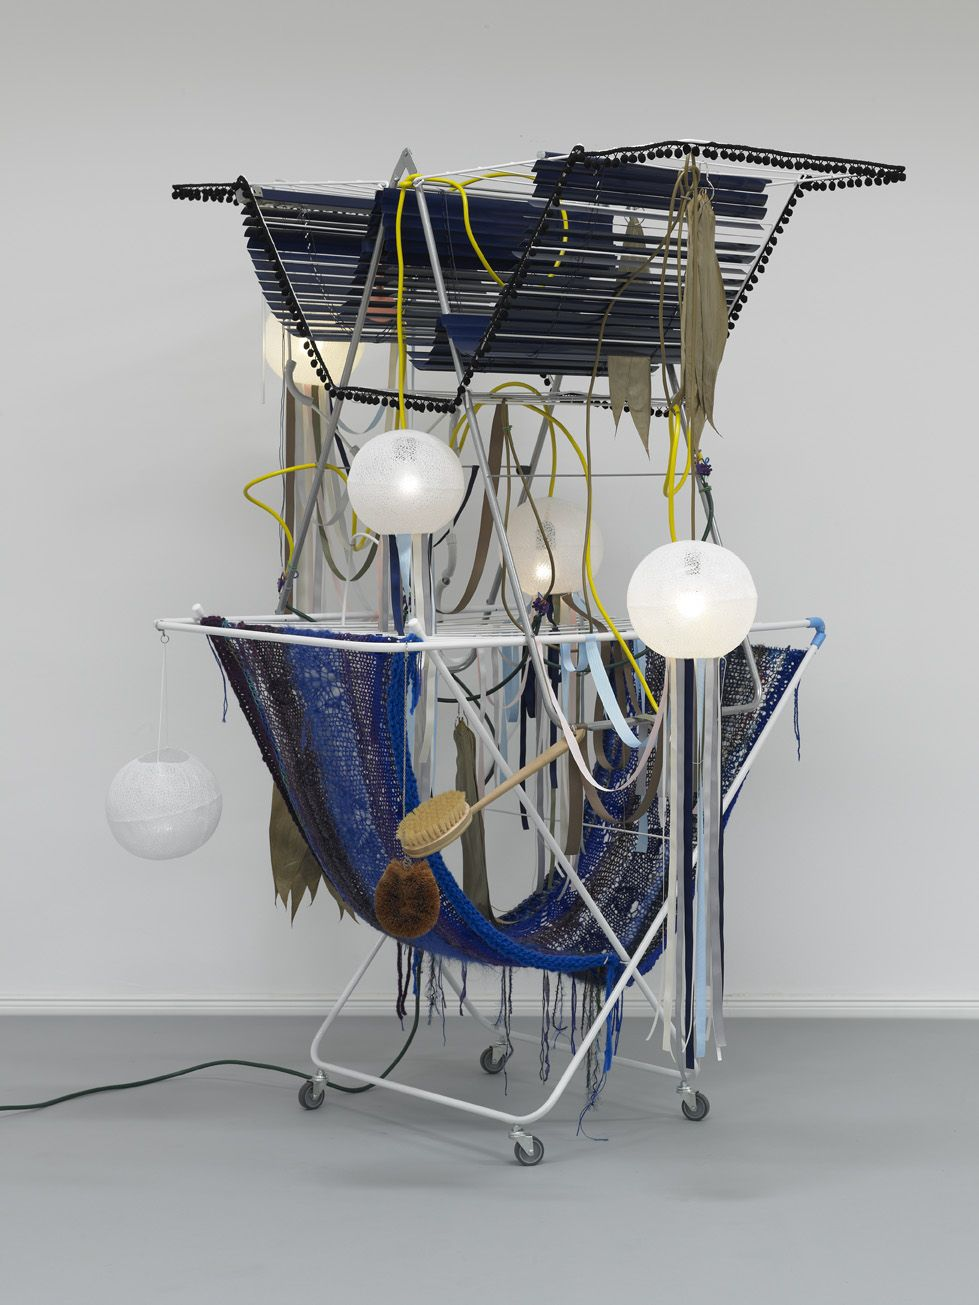 Haegue Yang  Dilemma Circus, 2010  2 drying racks on casters, light bulbs (frosted), lamp shades, cable, ribbon, aluminum venetian blinds, knitting yarn, dried lotus leaves, cosmetic sponge, metal ring, metal chain, body brush  57 1/8 x 49 1/4 x 72 3/4 inches (145 x 125 x 185 cm)